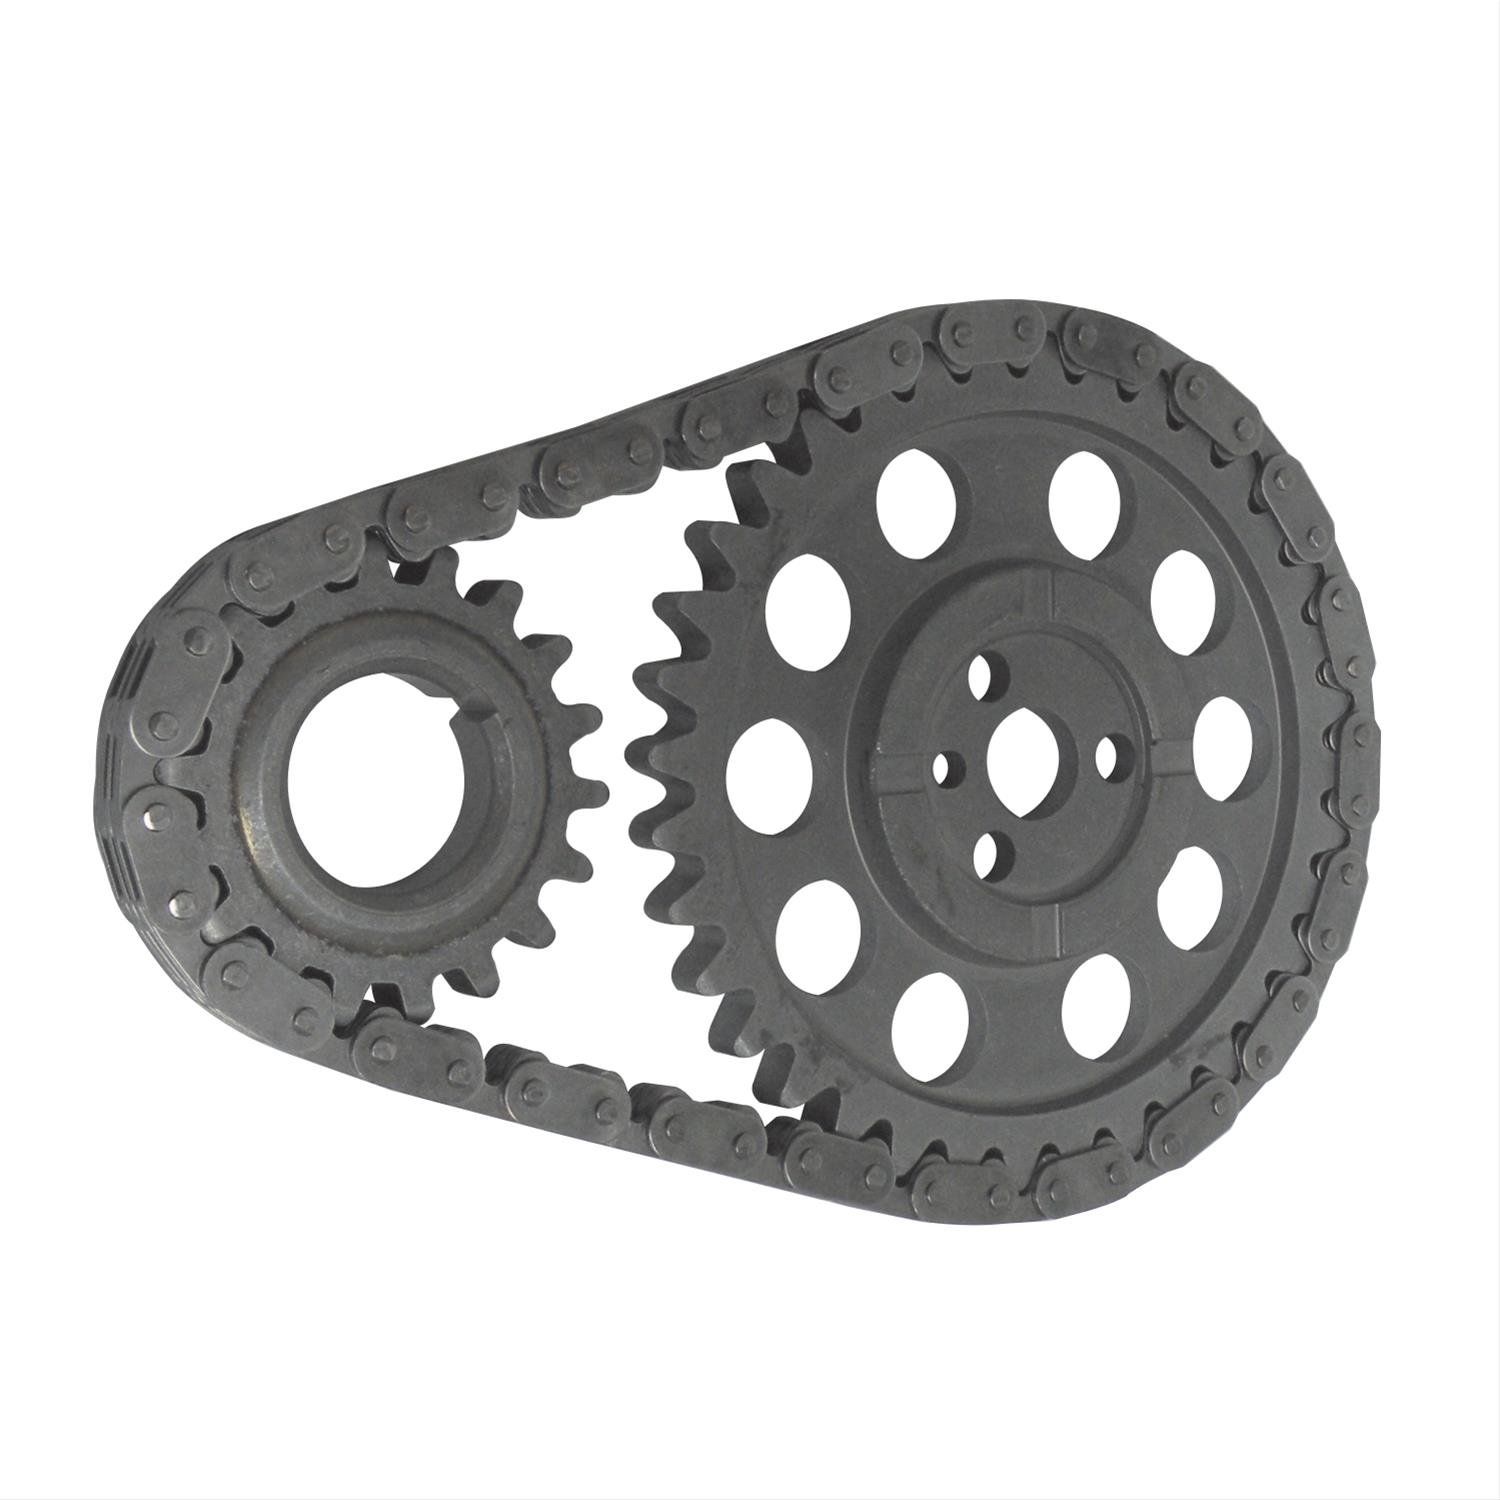 Melling 3-495S Timing Chain Set